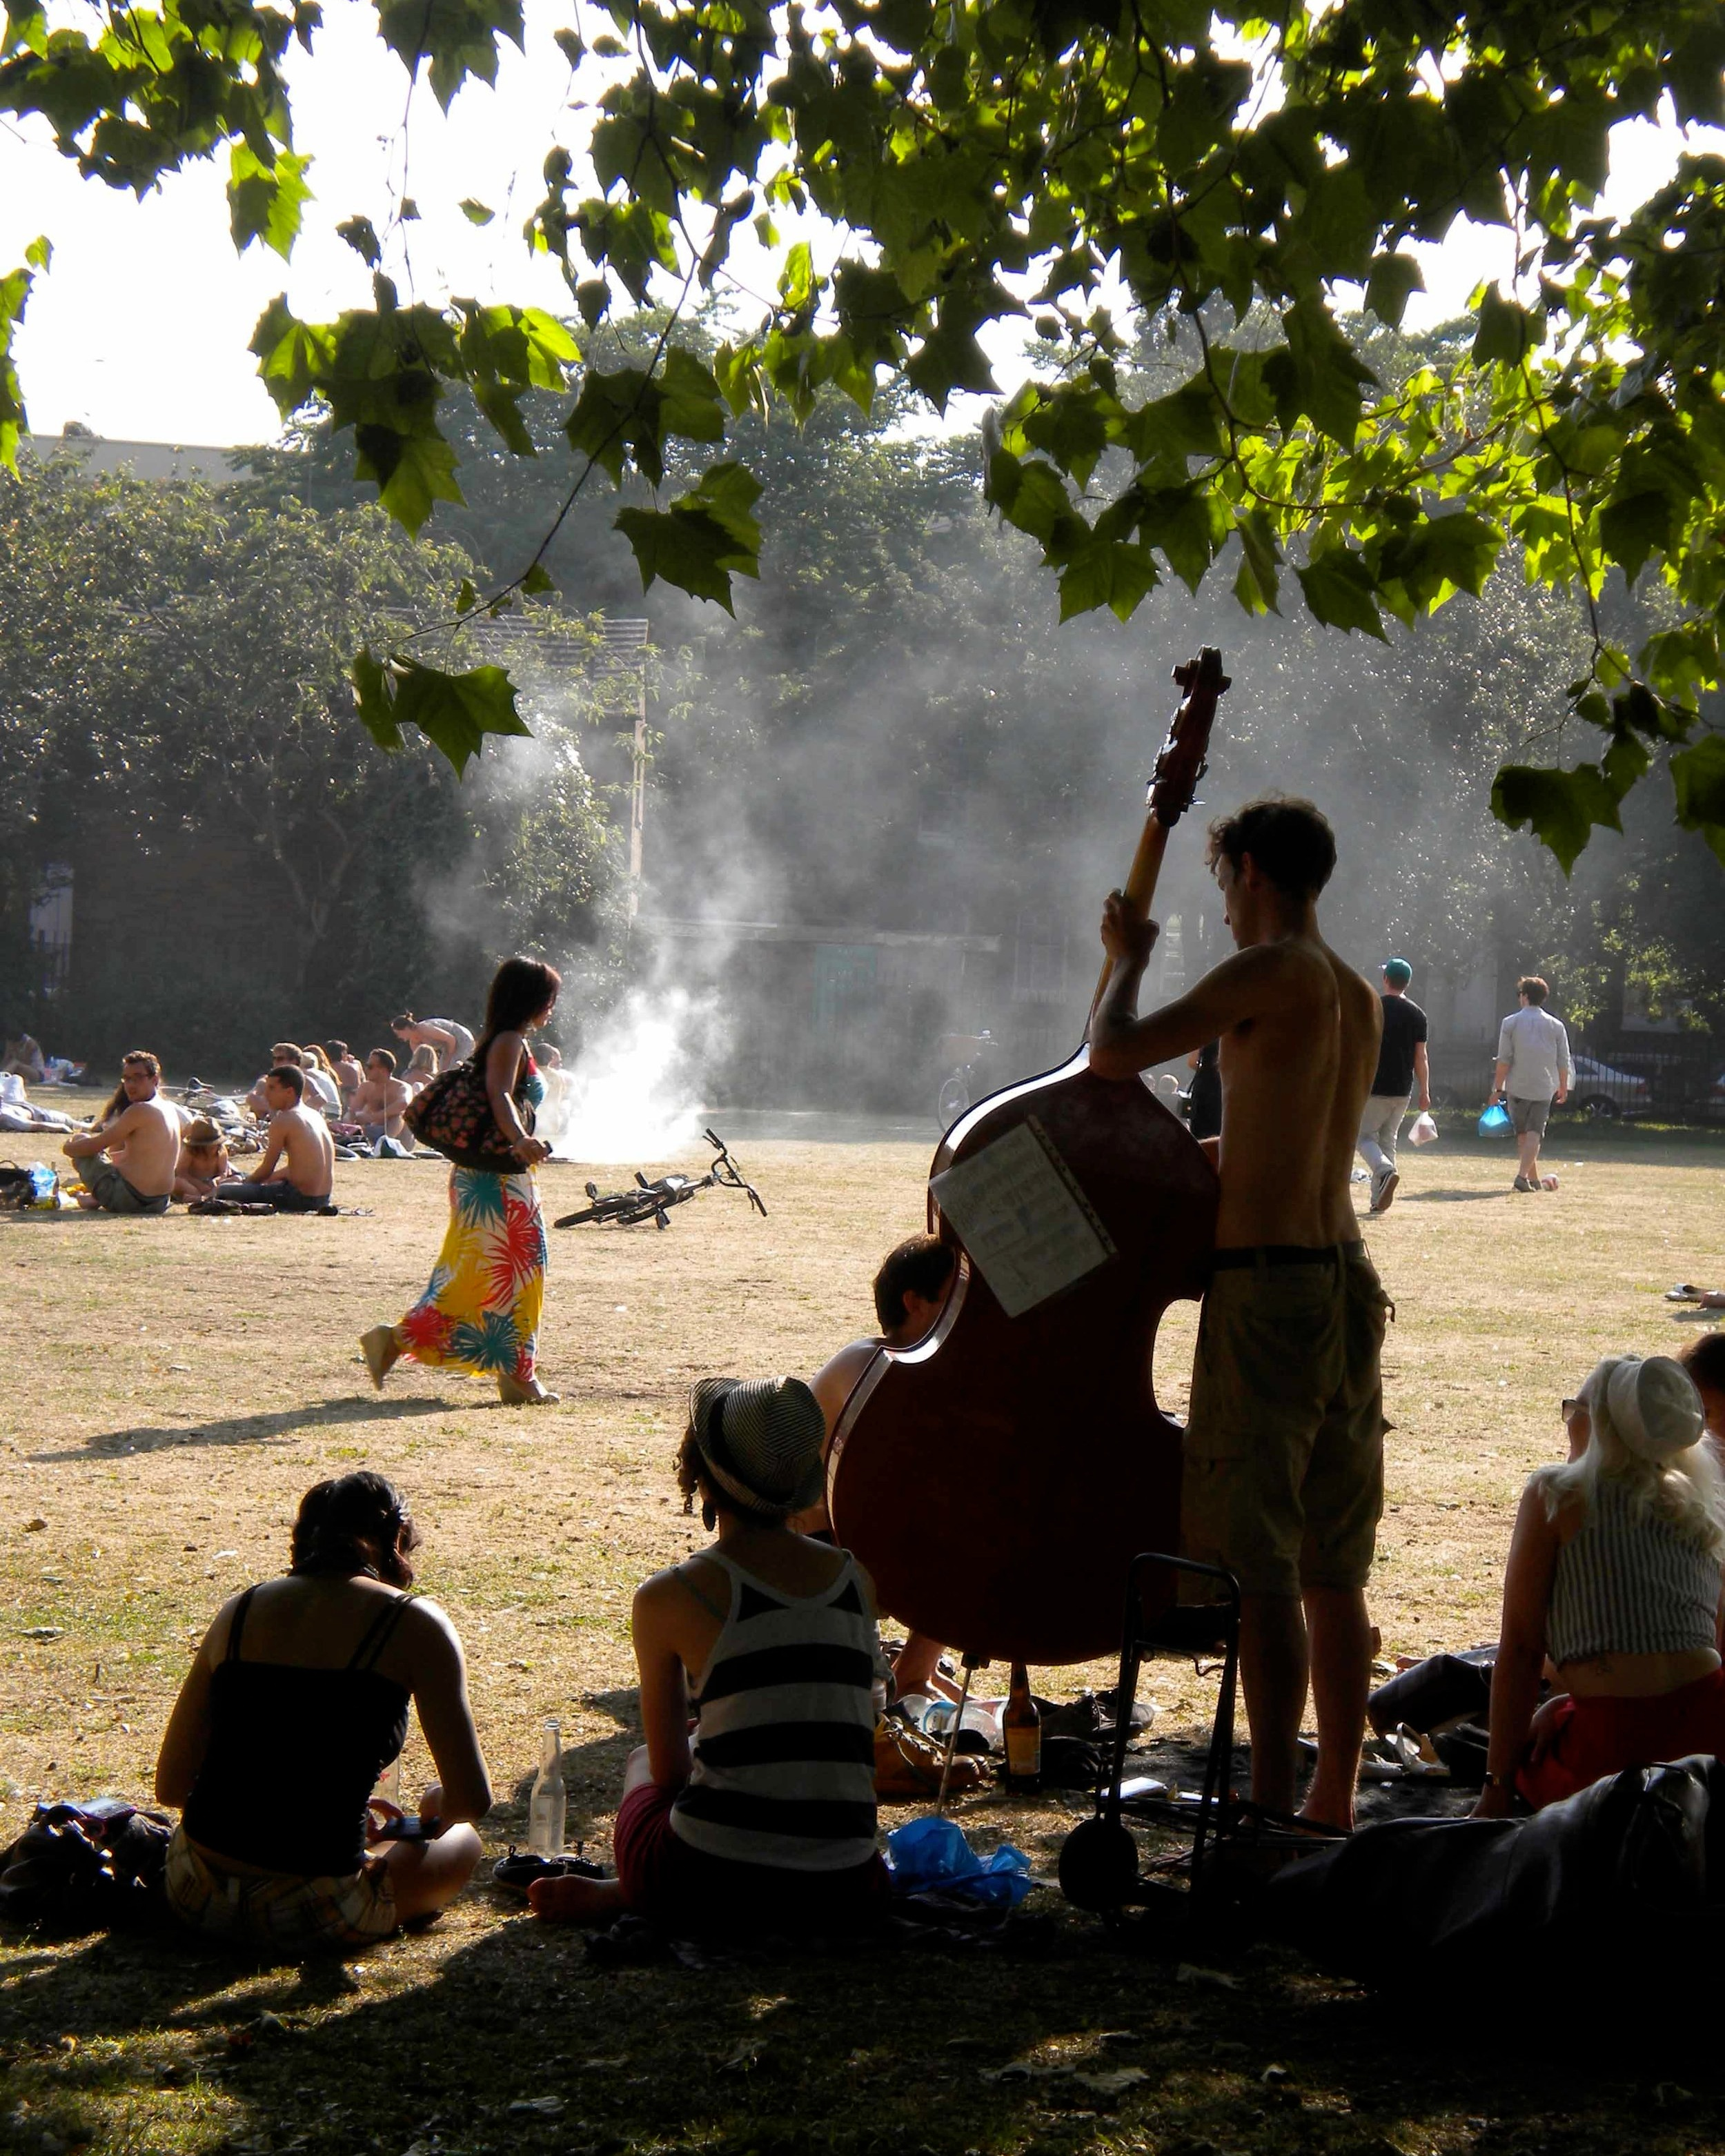 London's Lincoln Inn Fields, one of the best parks to visit in summer in London